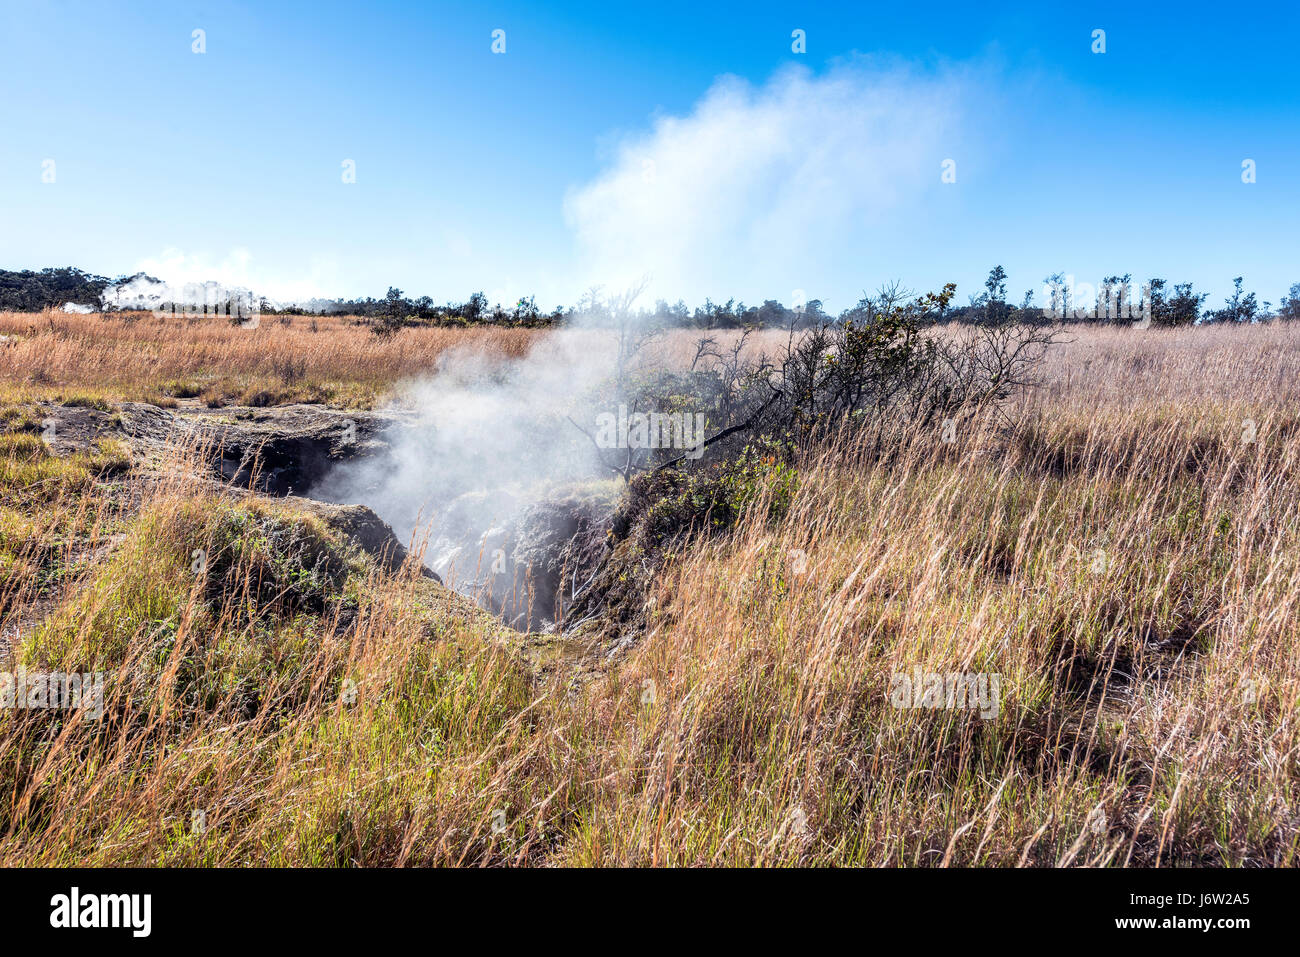 Natural steam rising from a volcanic steam vent in the earth at Volcano National Park, Kilauea Hawaii. - Stock Image